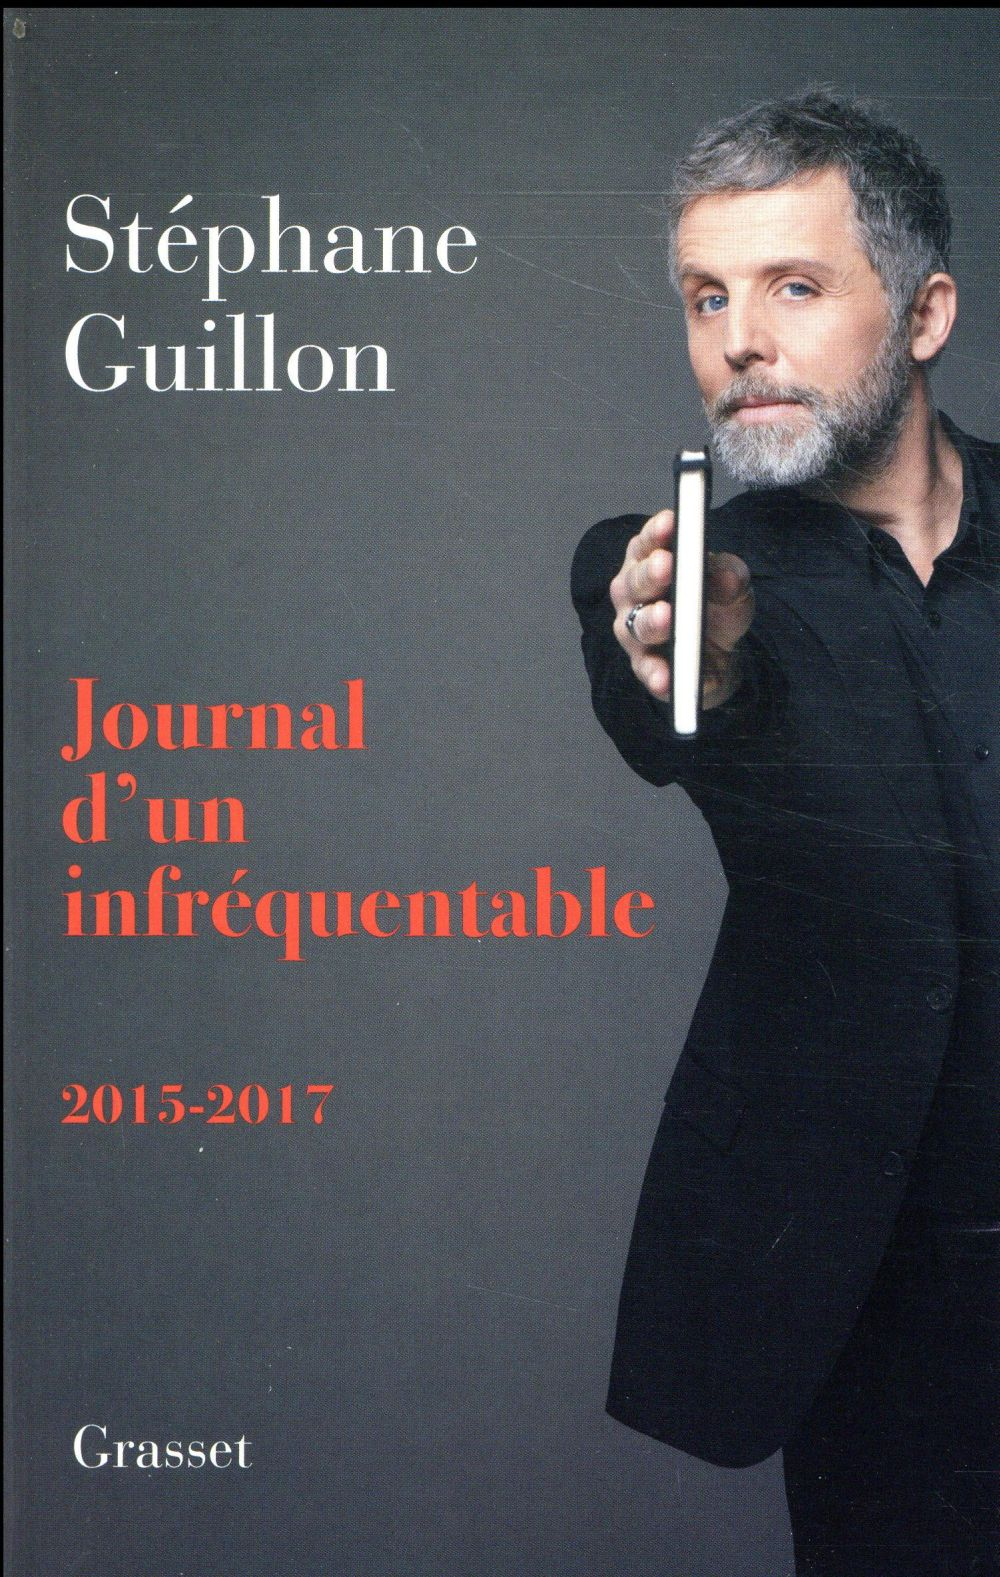 JOURNAL D'UN INFREQUENTABLE